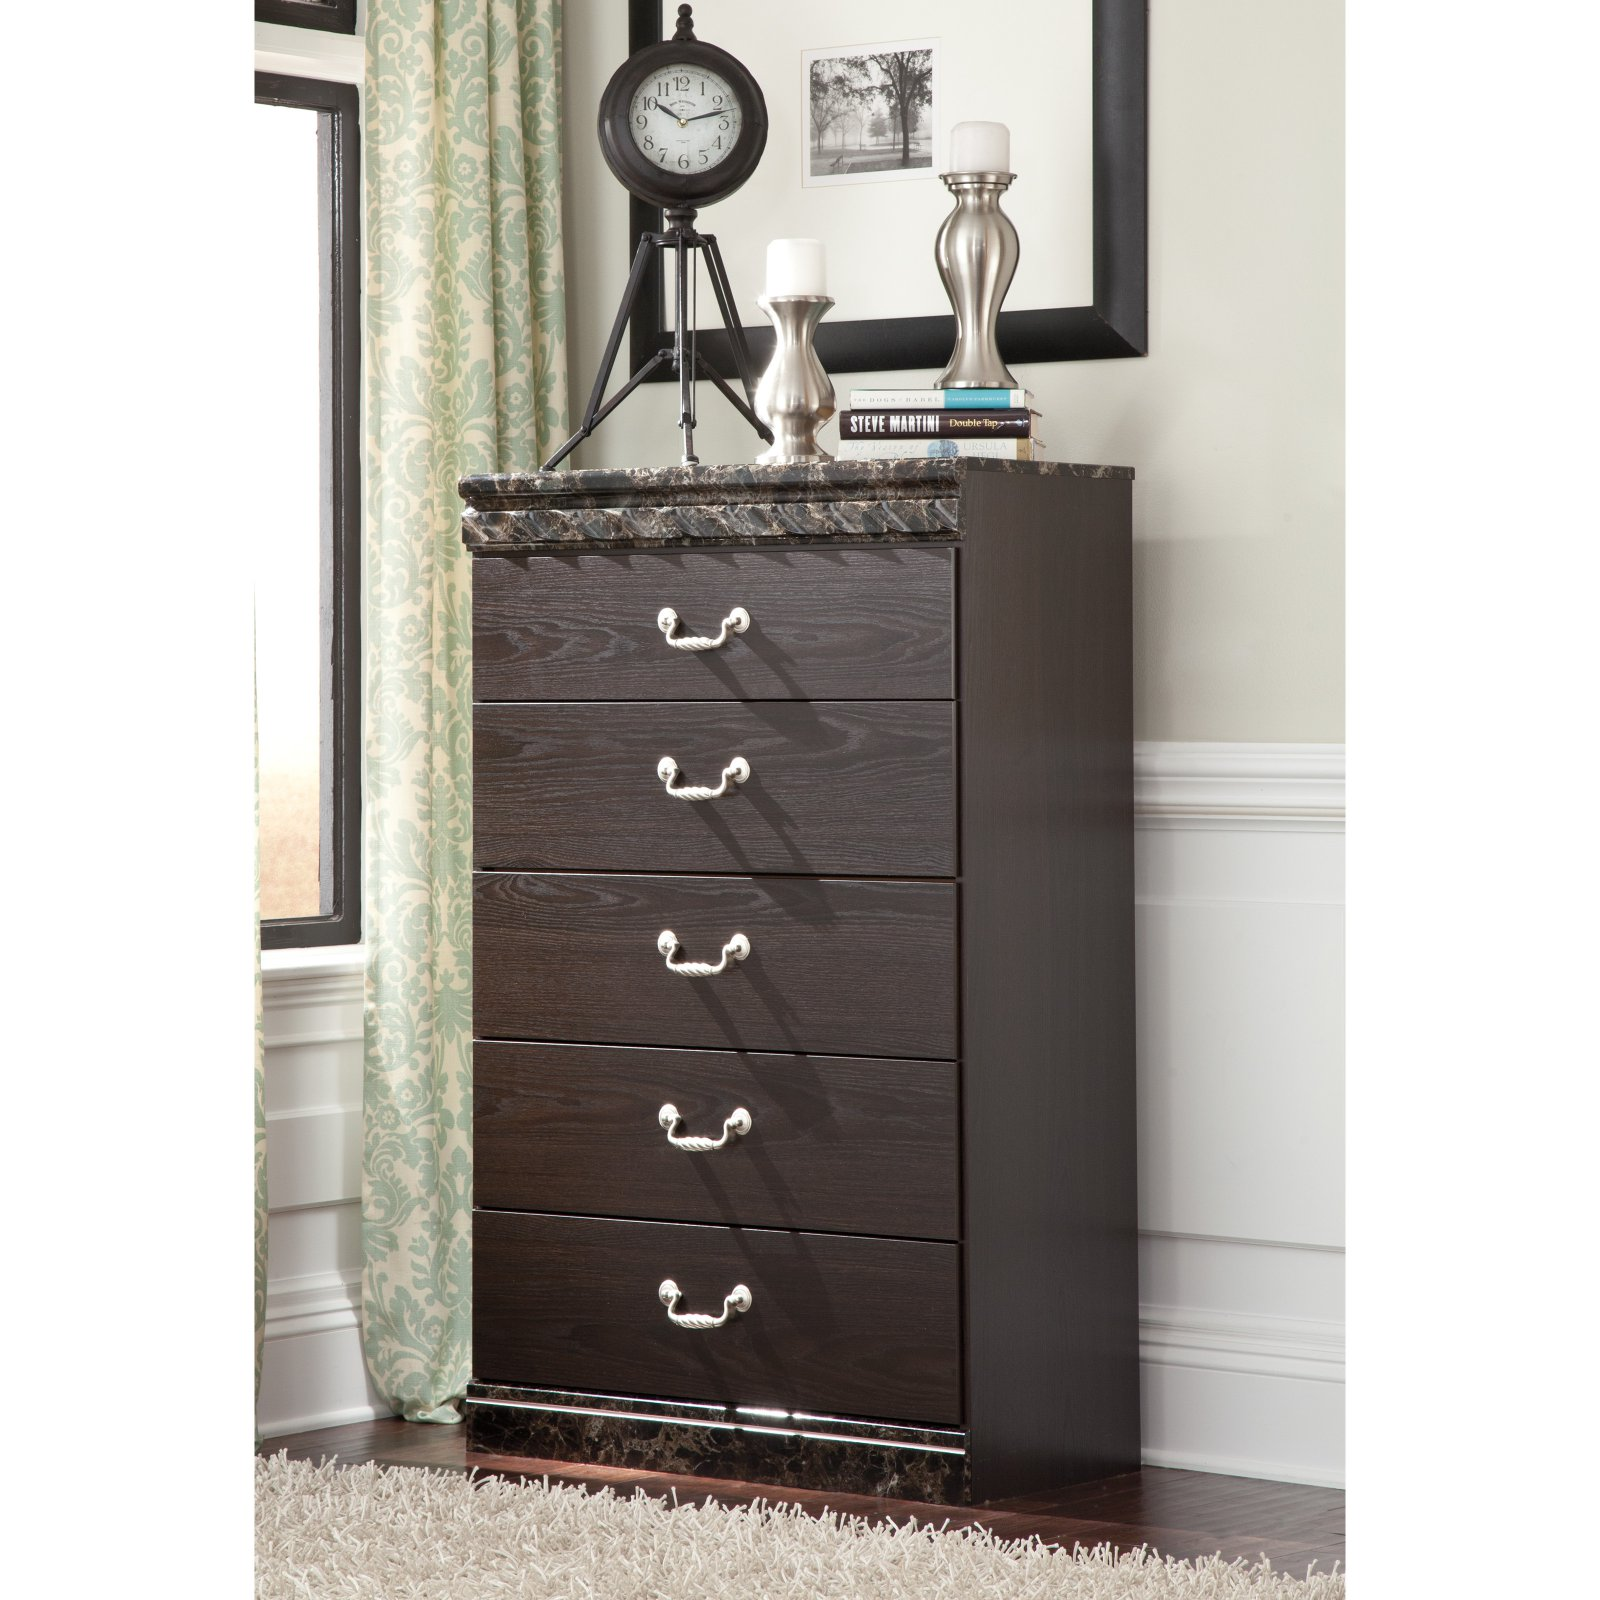 Signature Design by Ashley Vachel 5 Drawer Chest